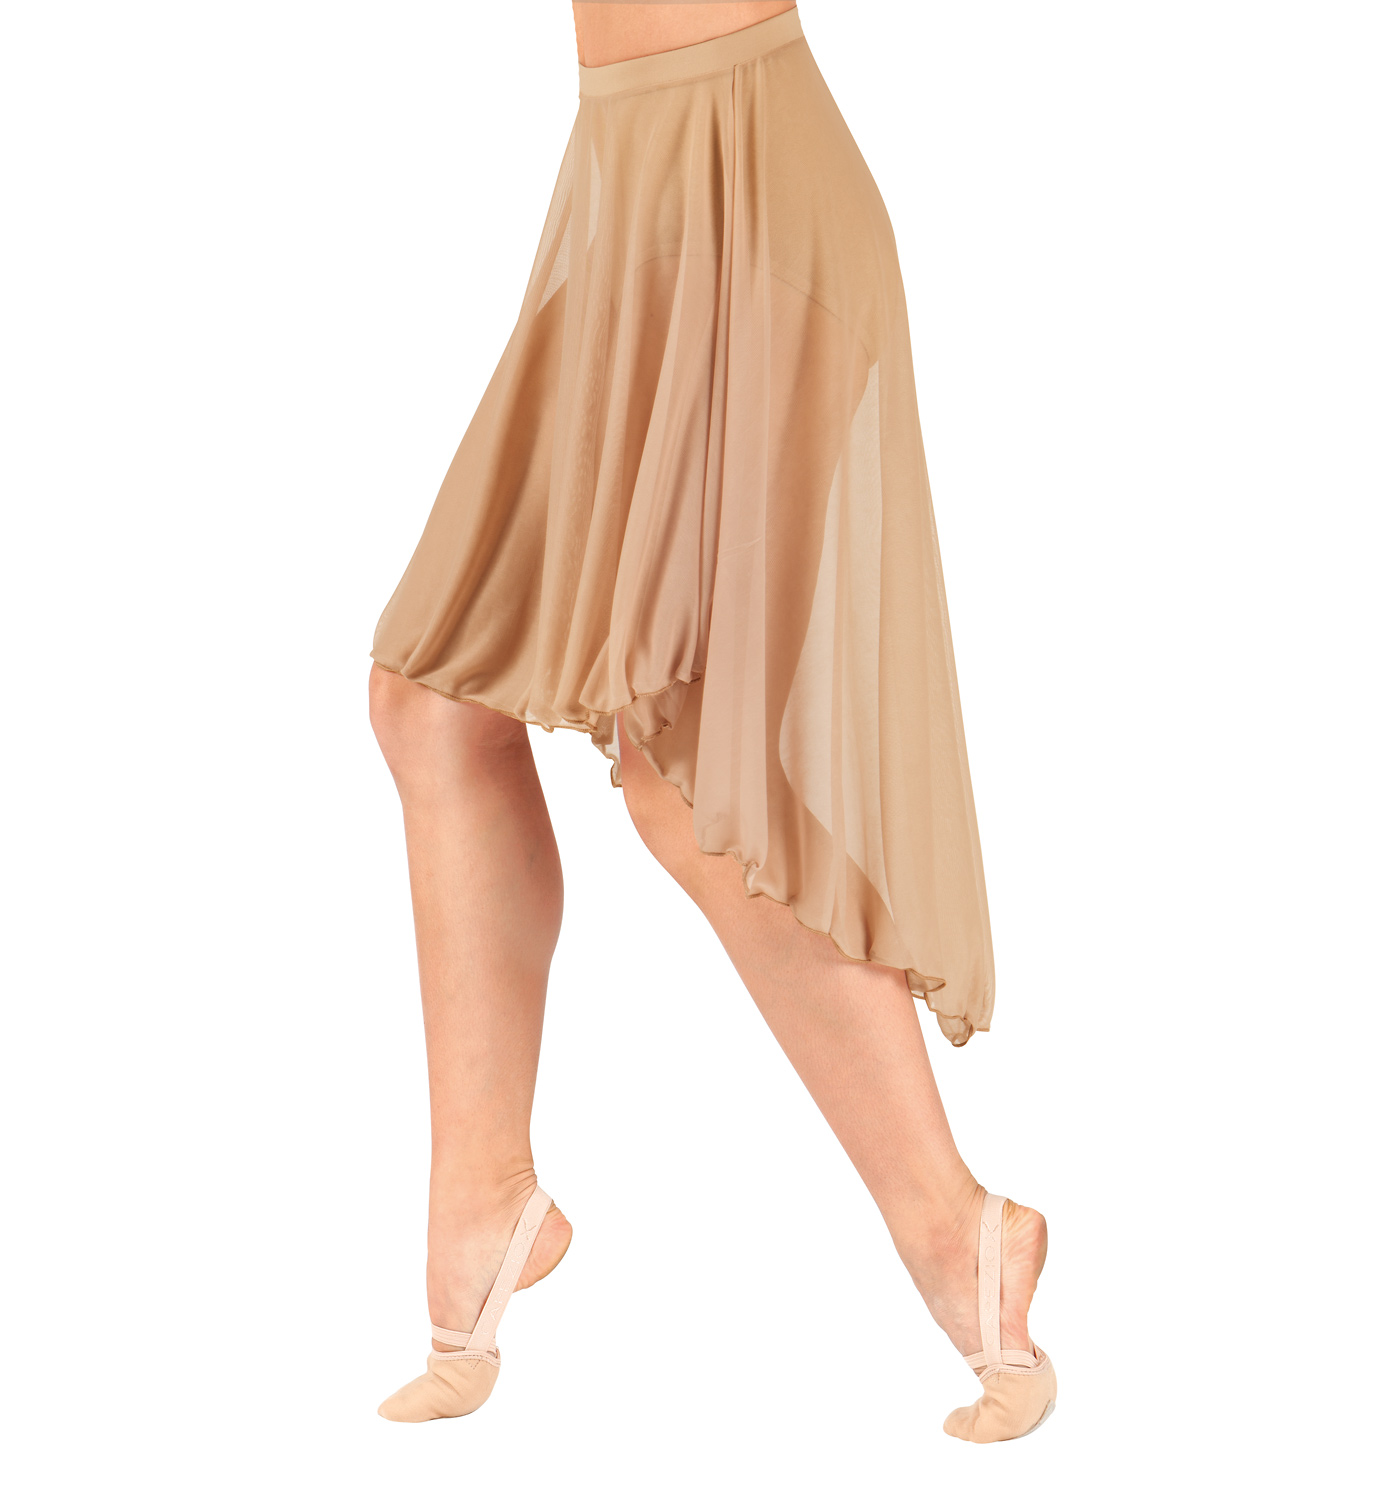 Image of Adult Mid Length High-Low Mesh Dance Skirt